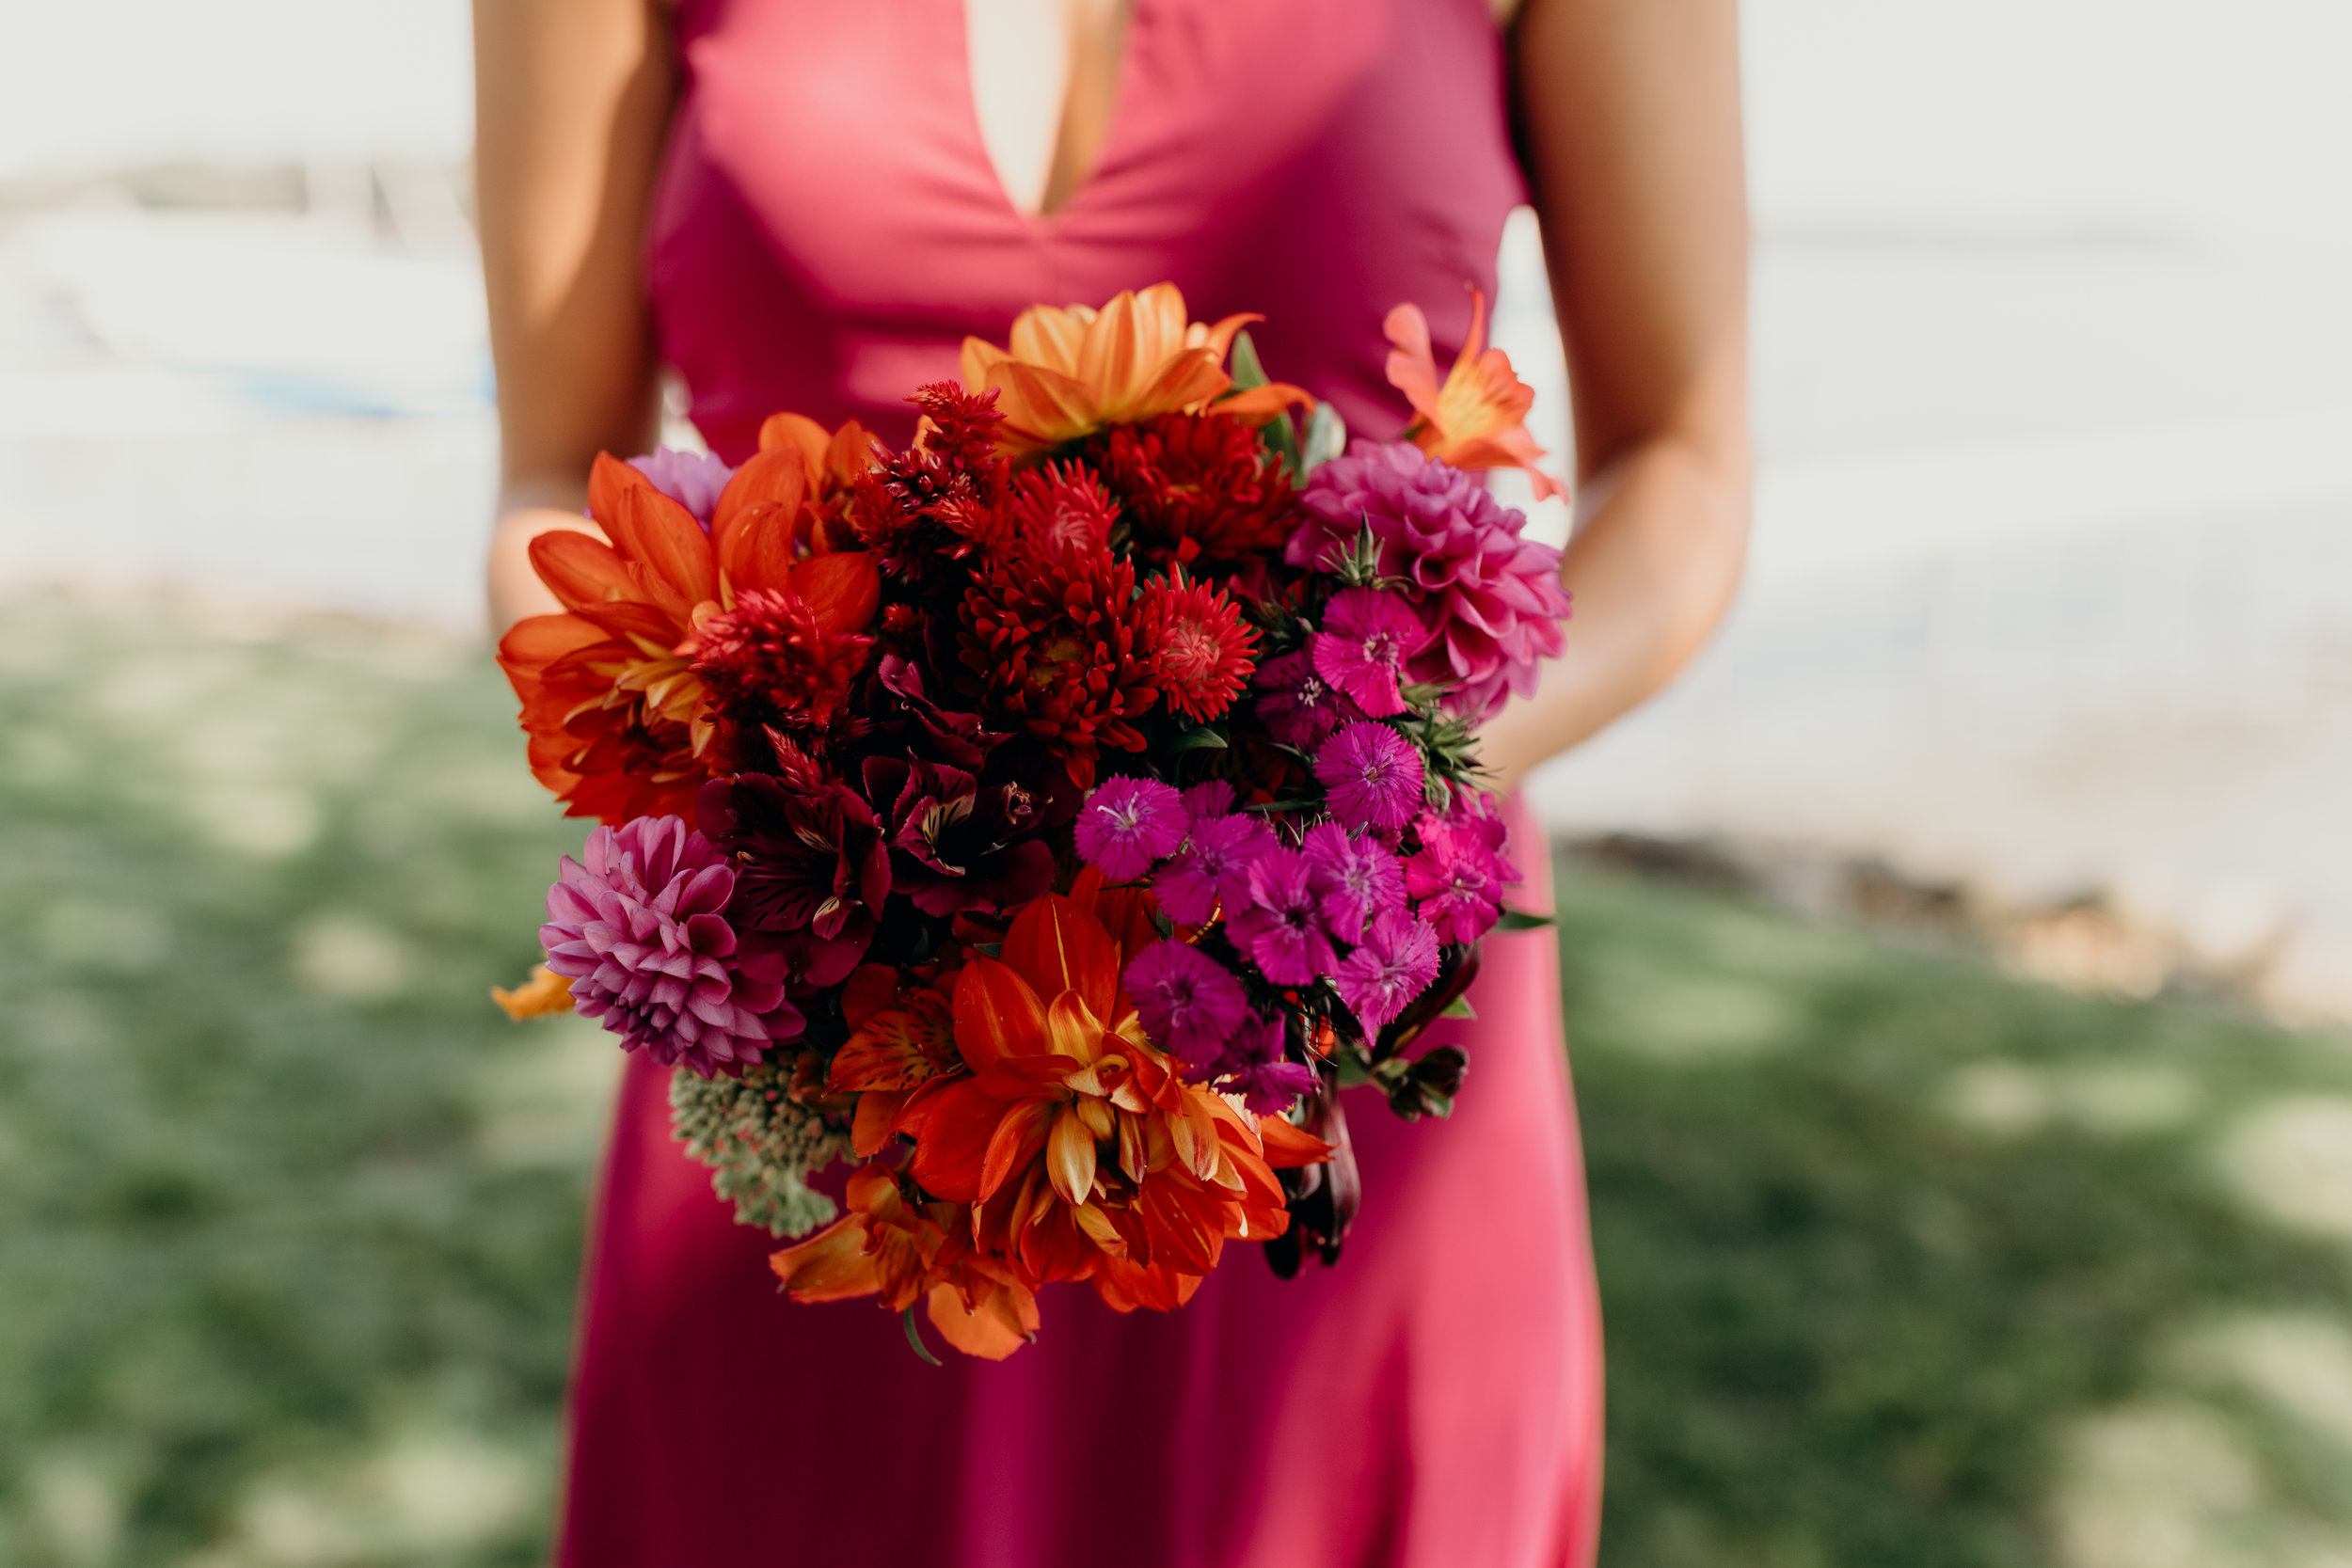 Bridesmaid's red, purple, and orange bouquet.